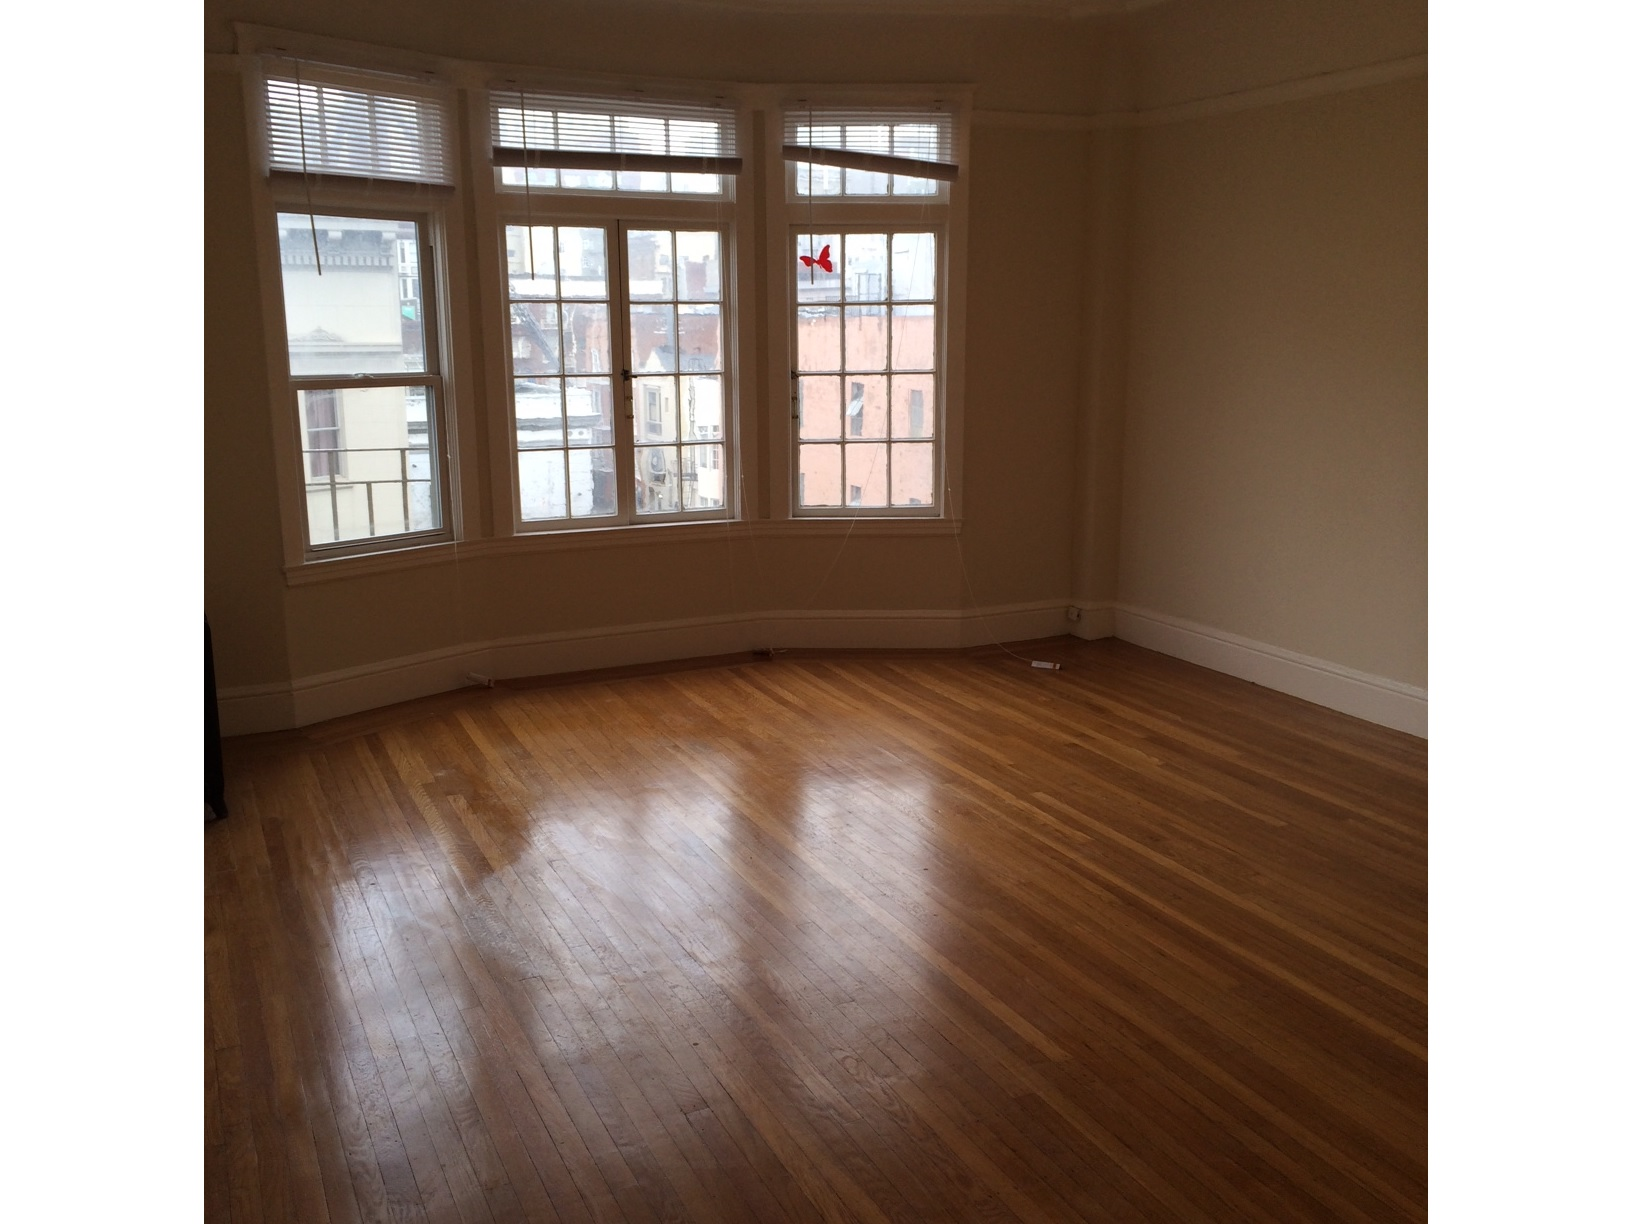 837 Geary Street, San Francisco, California, United States 94109, 1 Bedroom Bedrooms, ,1 BathroomBathrooms,Apartment,Studio,Geary Street,1306